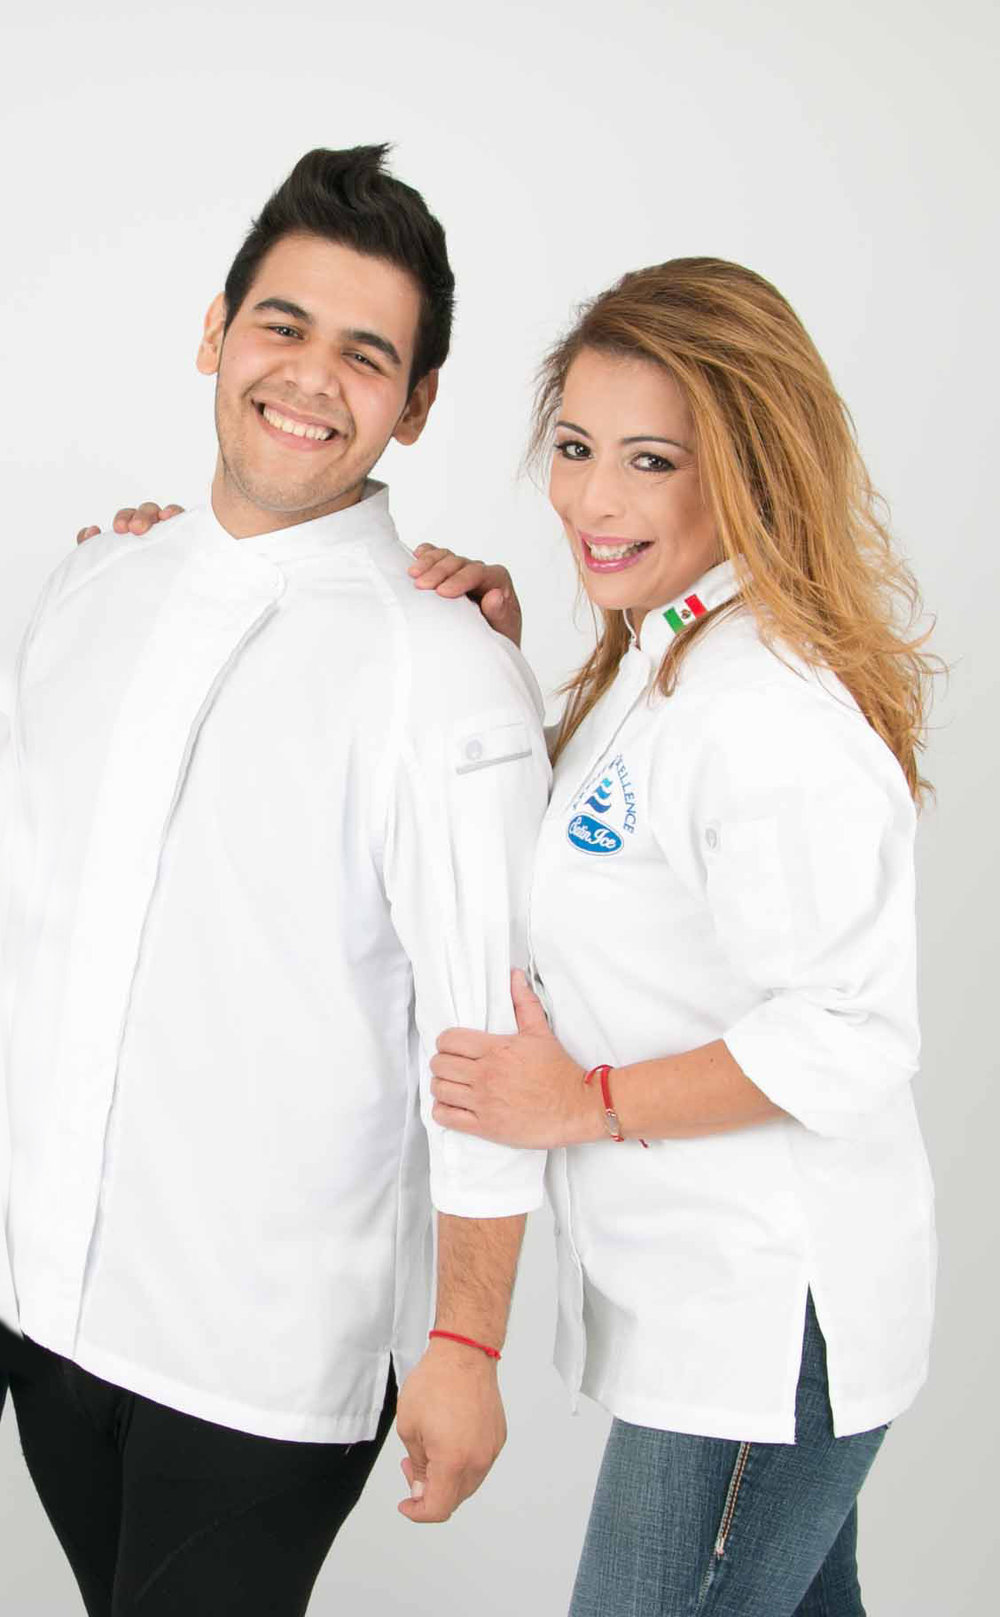 CHRIS ARANDA TEAM - Chris Aranda, Mary Carmen Gonzalez